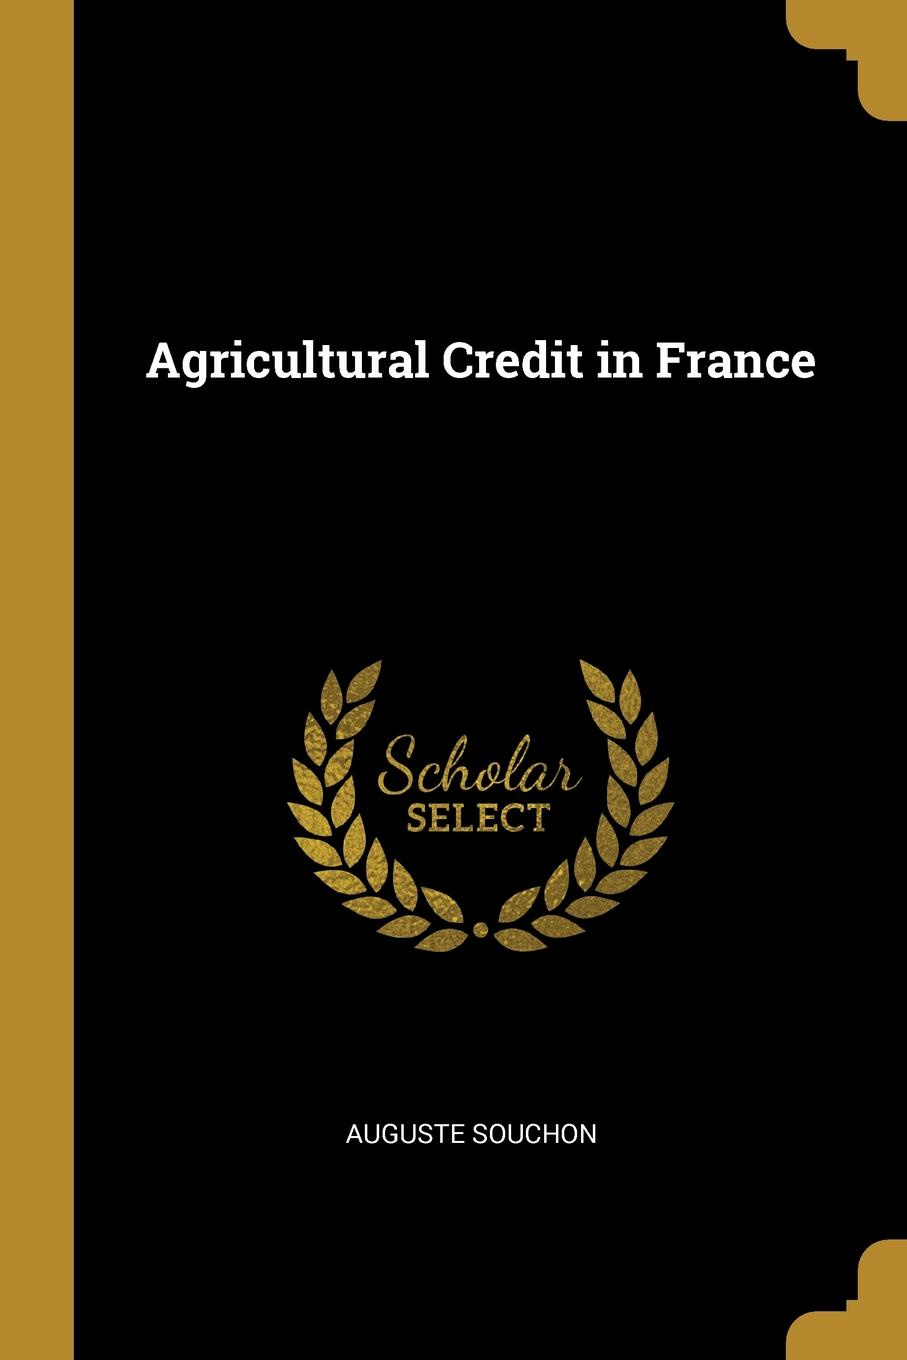 Auguste Souchon. Agricultural Credit in France